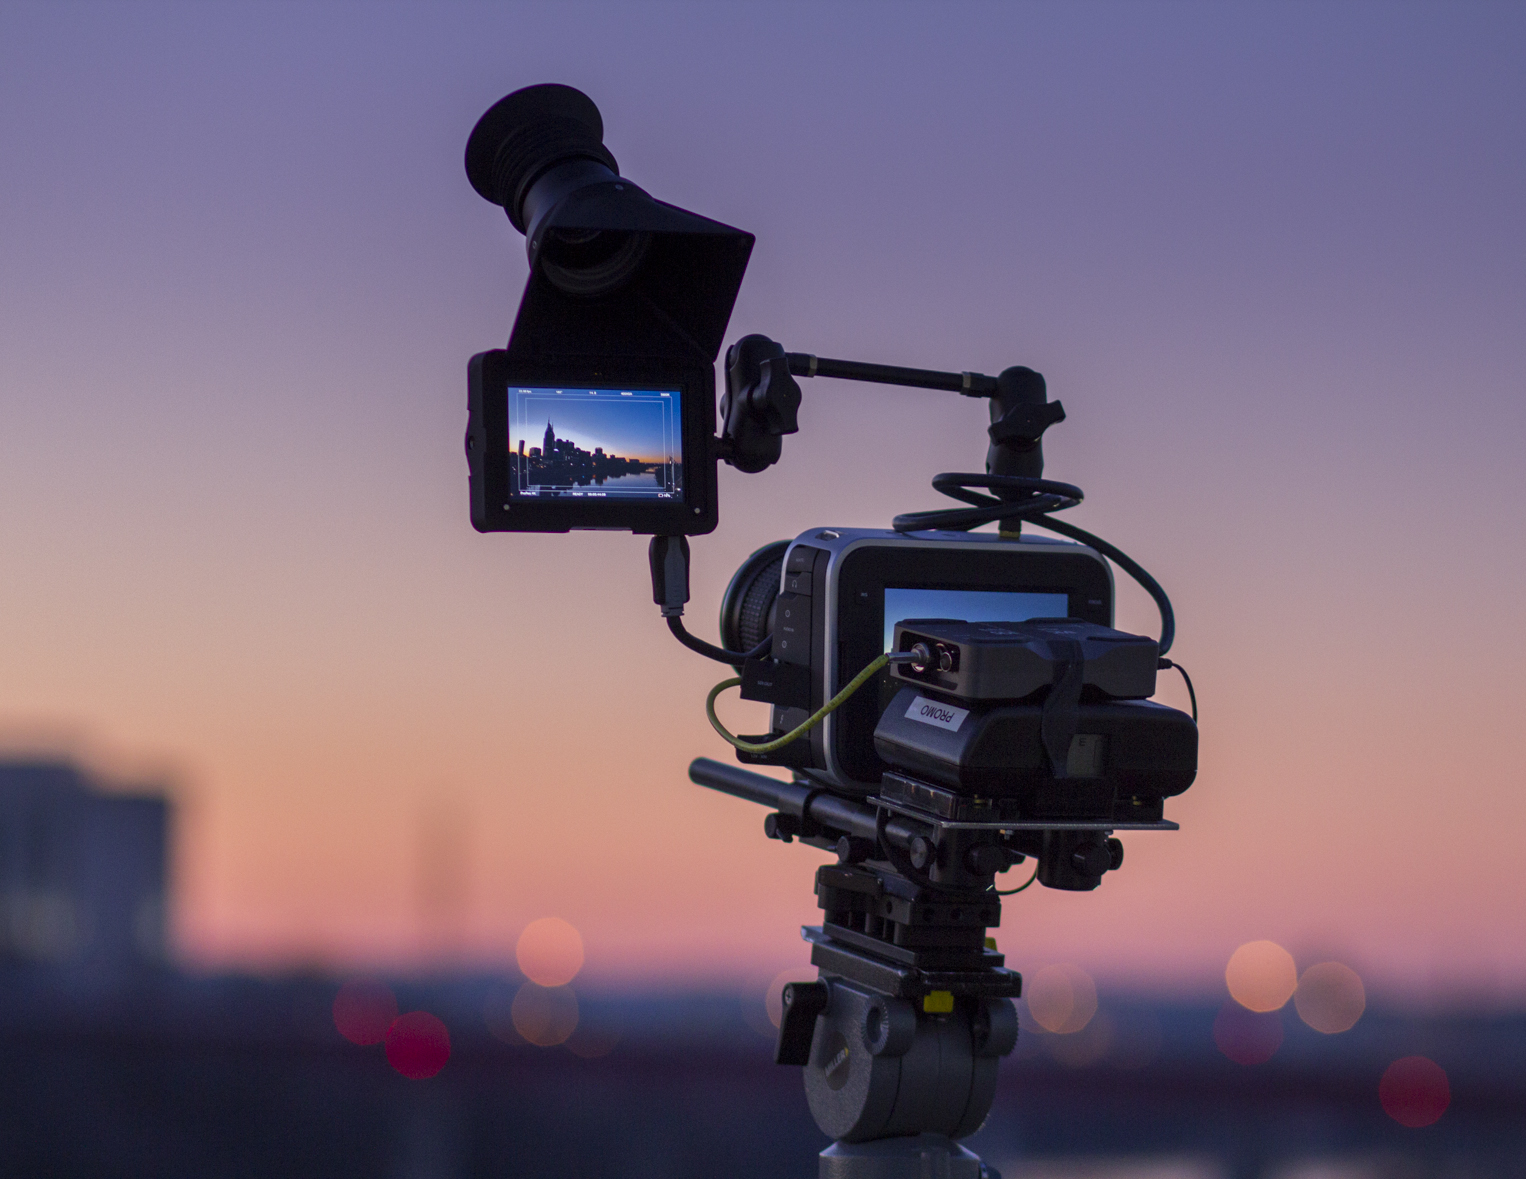 Review The 4k Blackmagic Production Camera By Brian Hallett Provideo Coalition